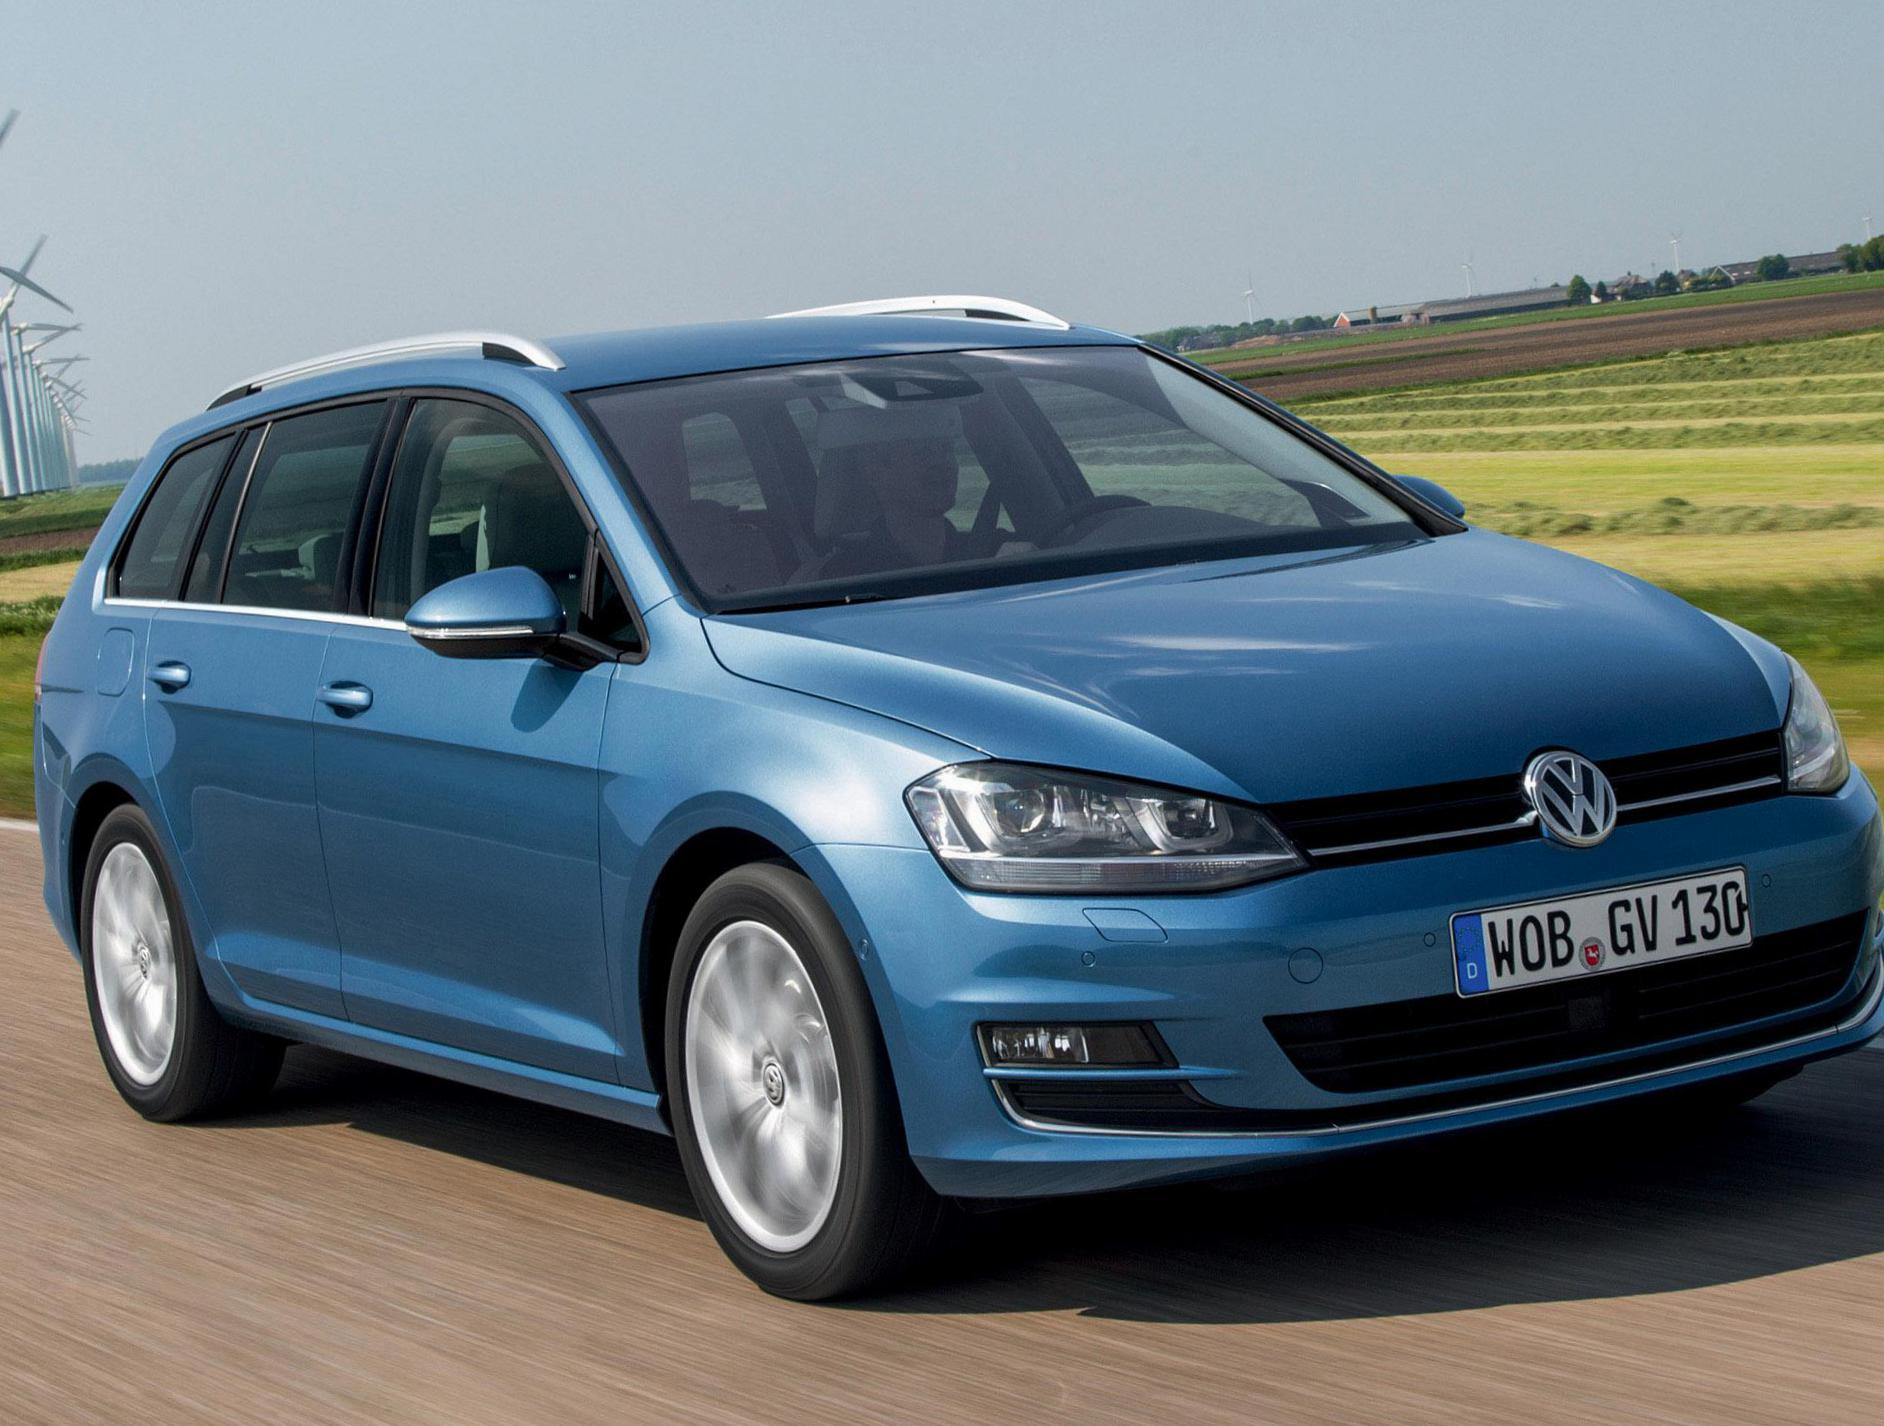 Golf Variant Volkswagen used 2010